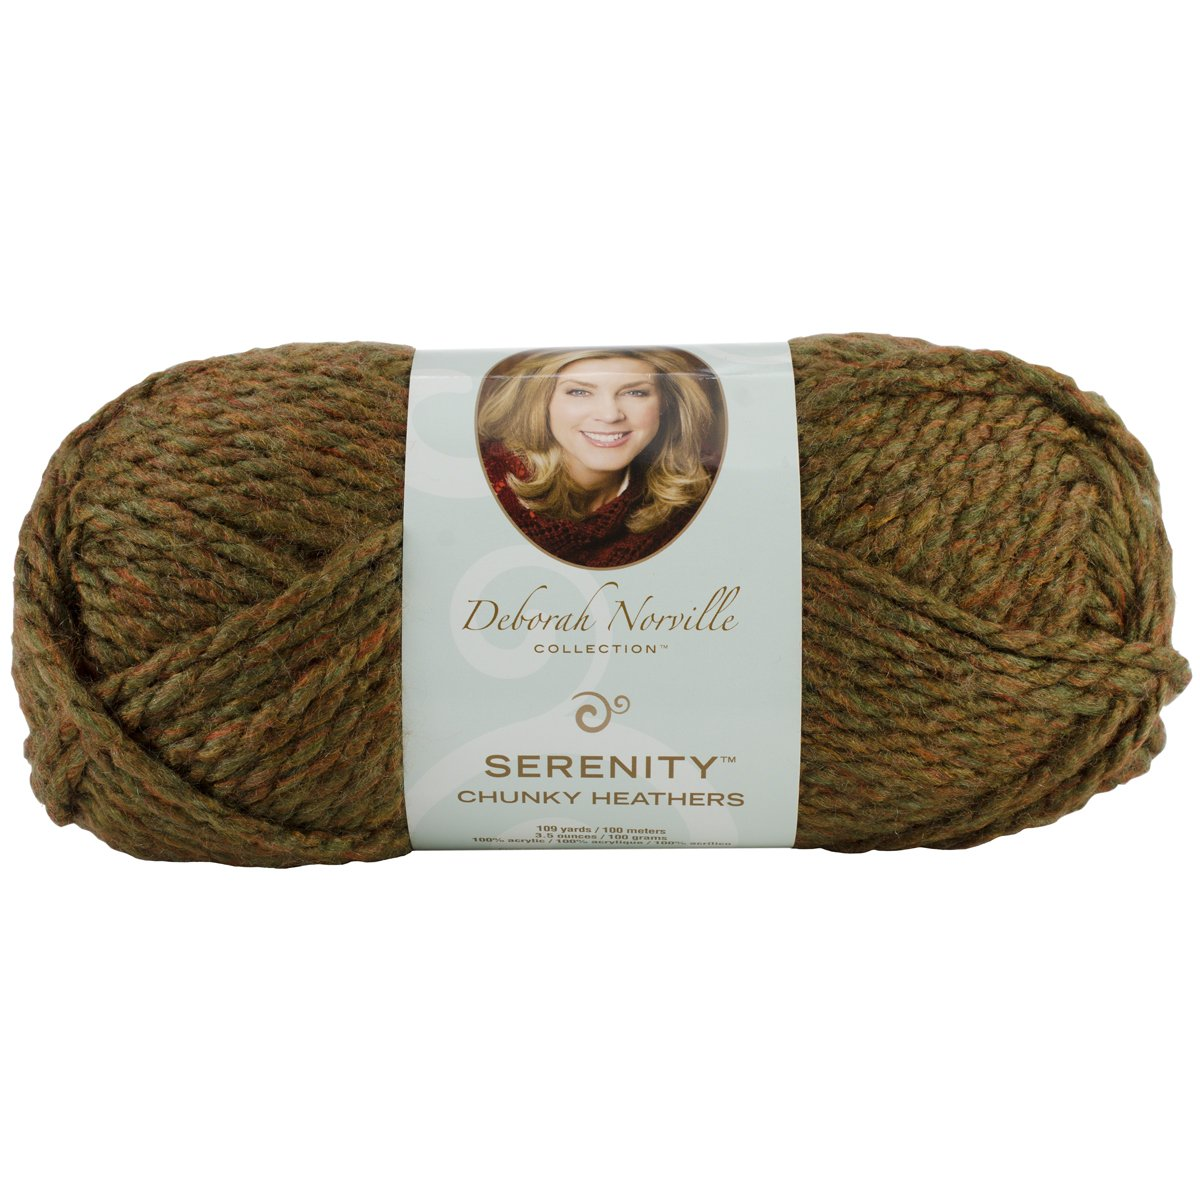 Amazon.com: Deborah Norville Collection Serenity Chunky Heathers ...